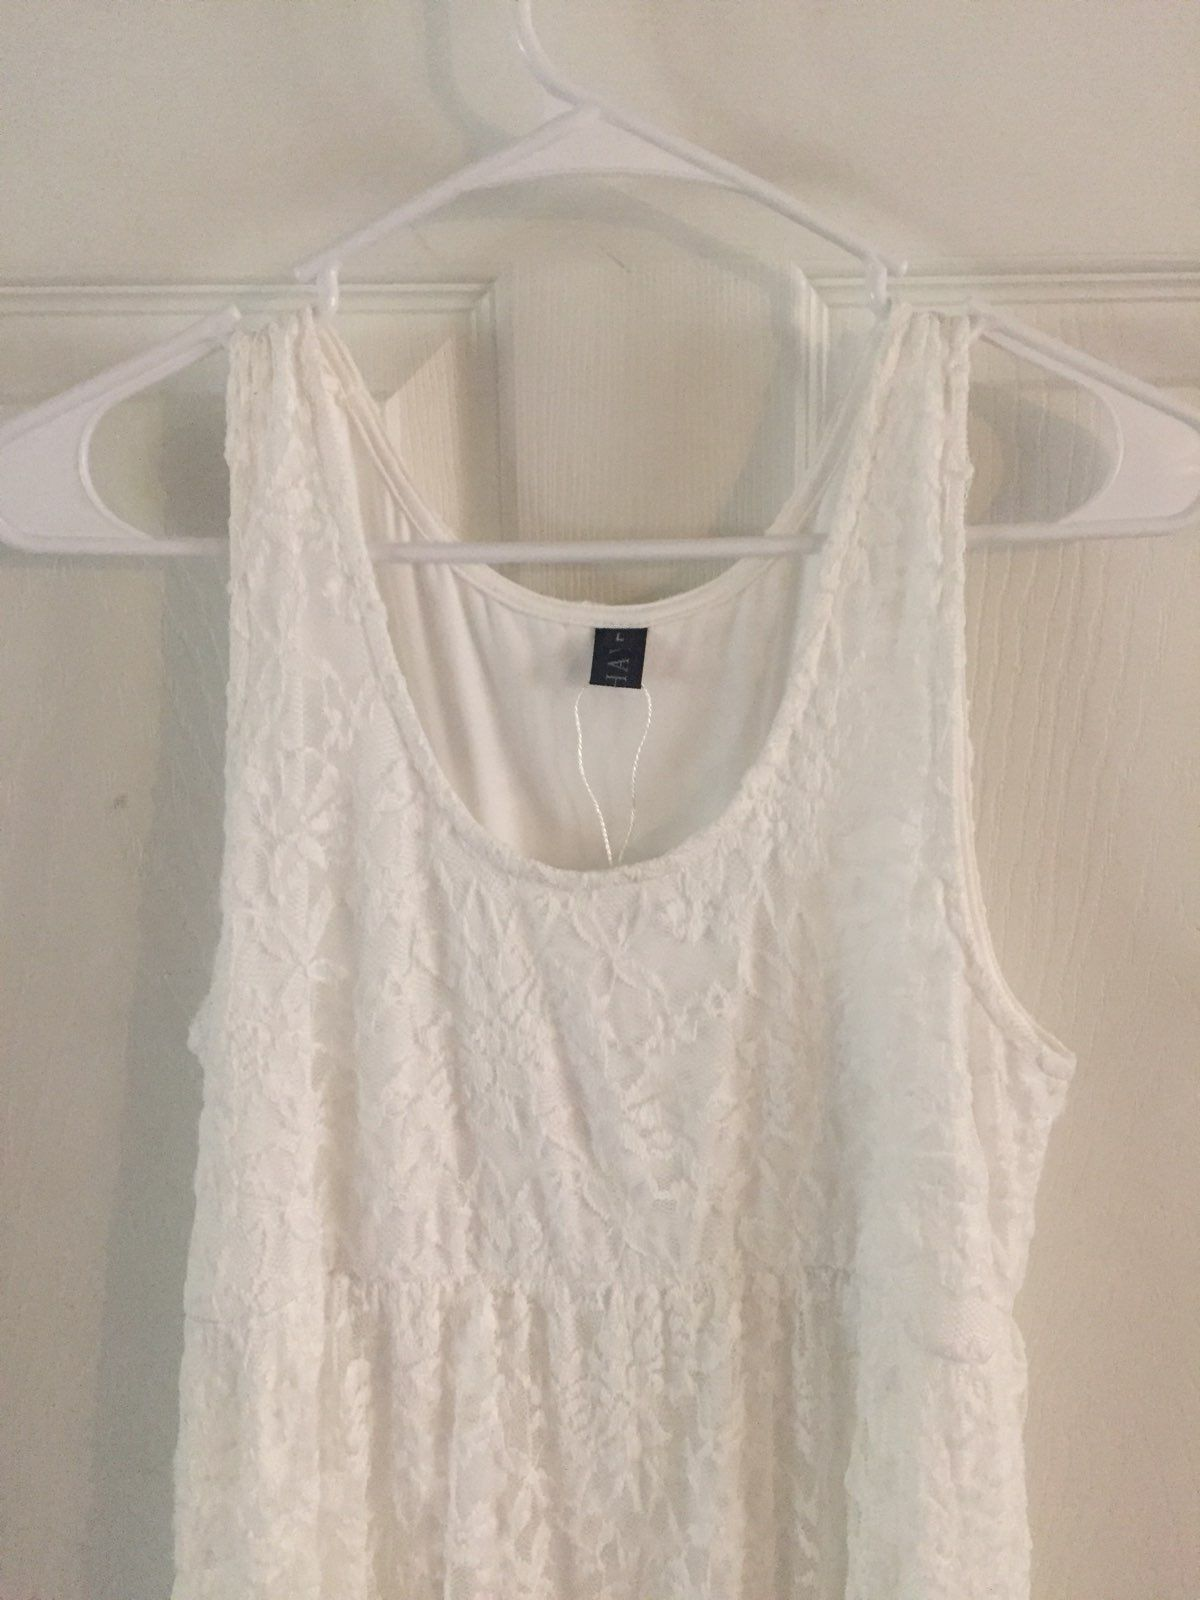 New off white lace maternity dress large mercari buy sell new off white lace maternity dress large ombrellifo Gallery